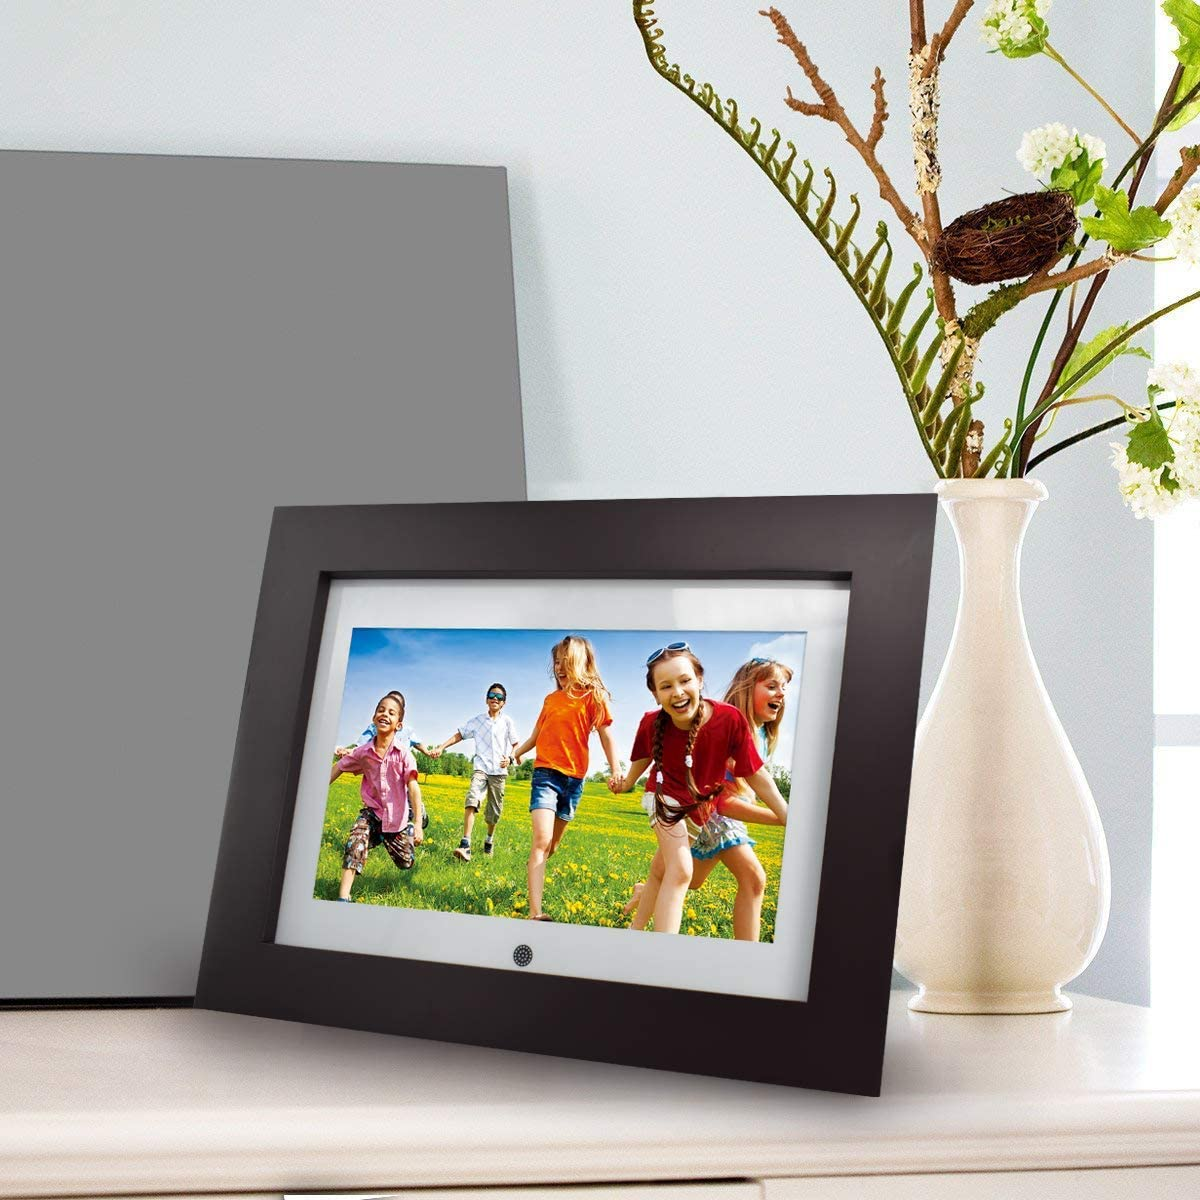 Sylvania SDPF1095 10-Inch Wi-Fi Cloud Digital Picture Frame Renewed